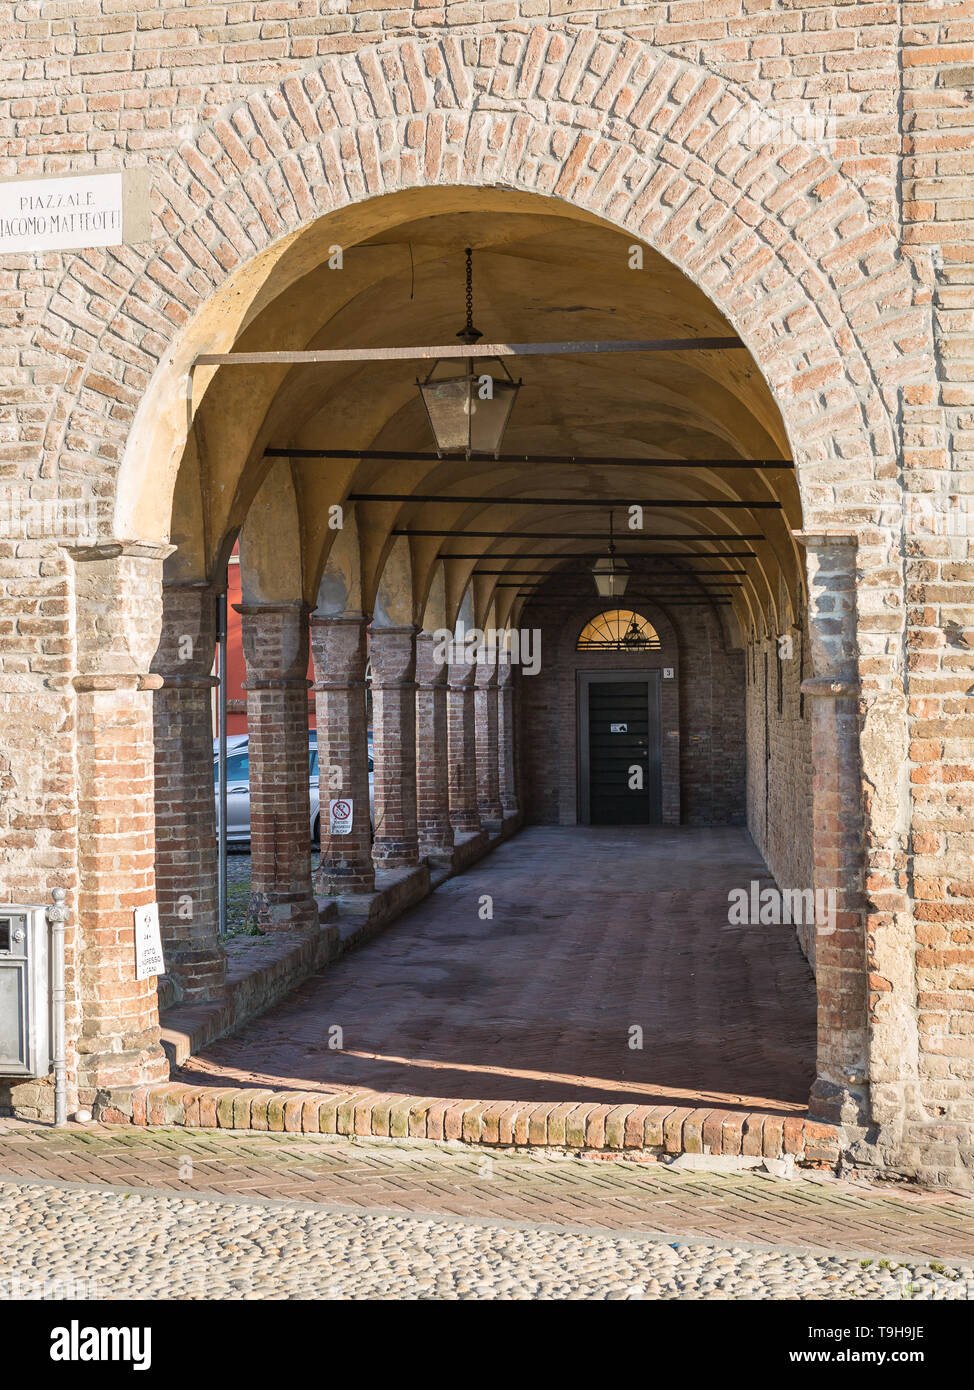 Archway, Columns and Colonnade in Fontanellato in Parma, Italy. - Stock Image